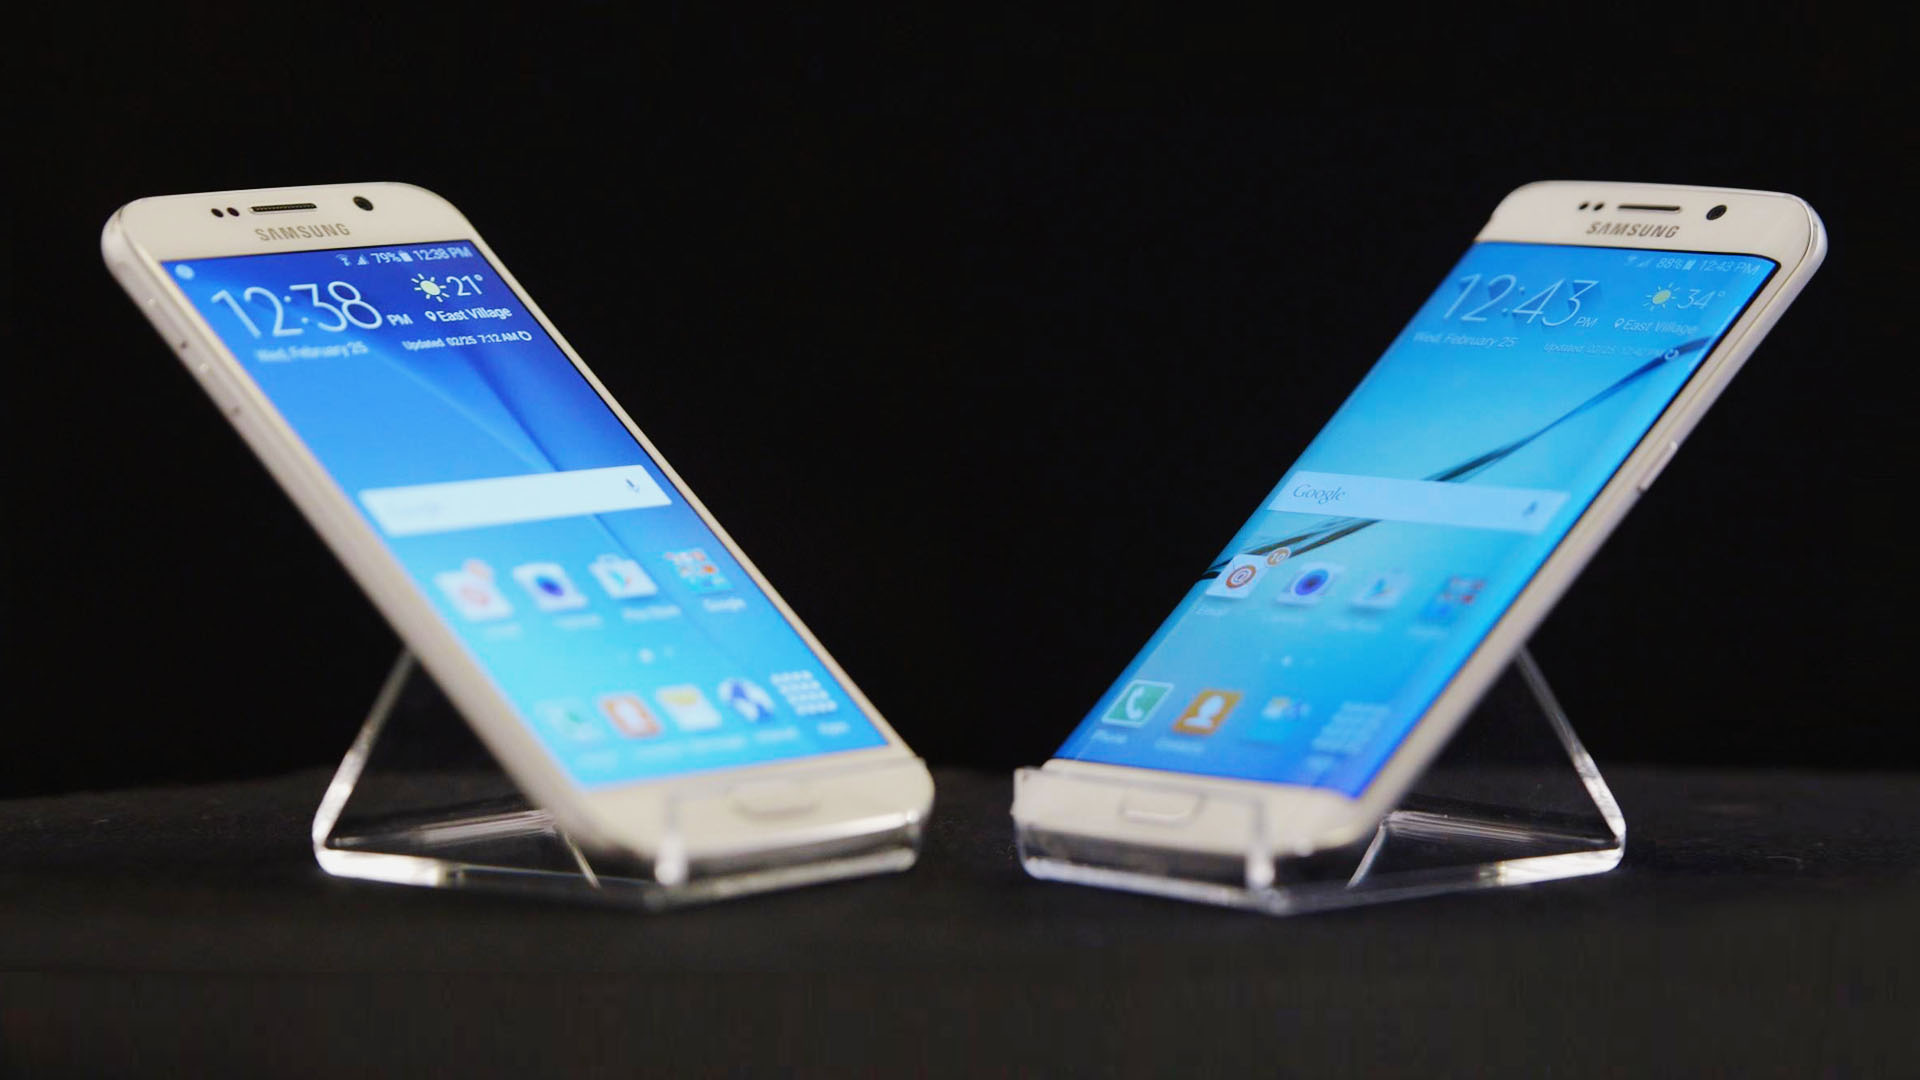 Hands On Samsungs Fancy New Galaxy S6 Edge Phones Bloomberg